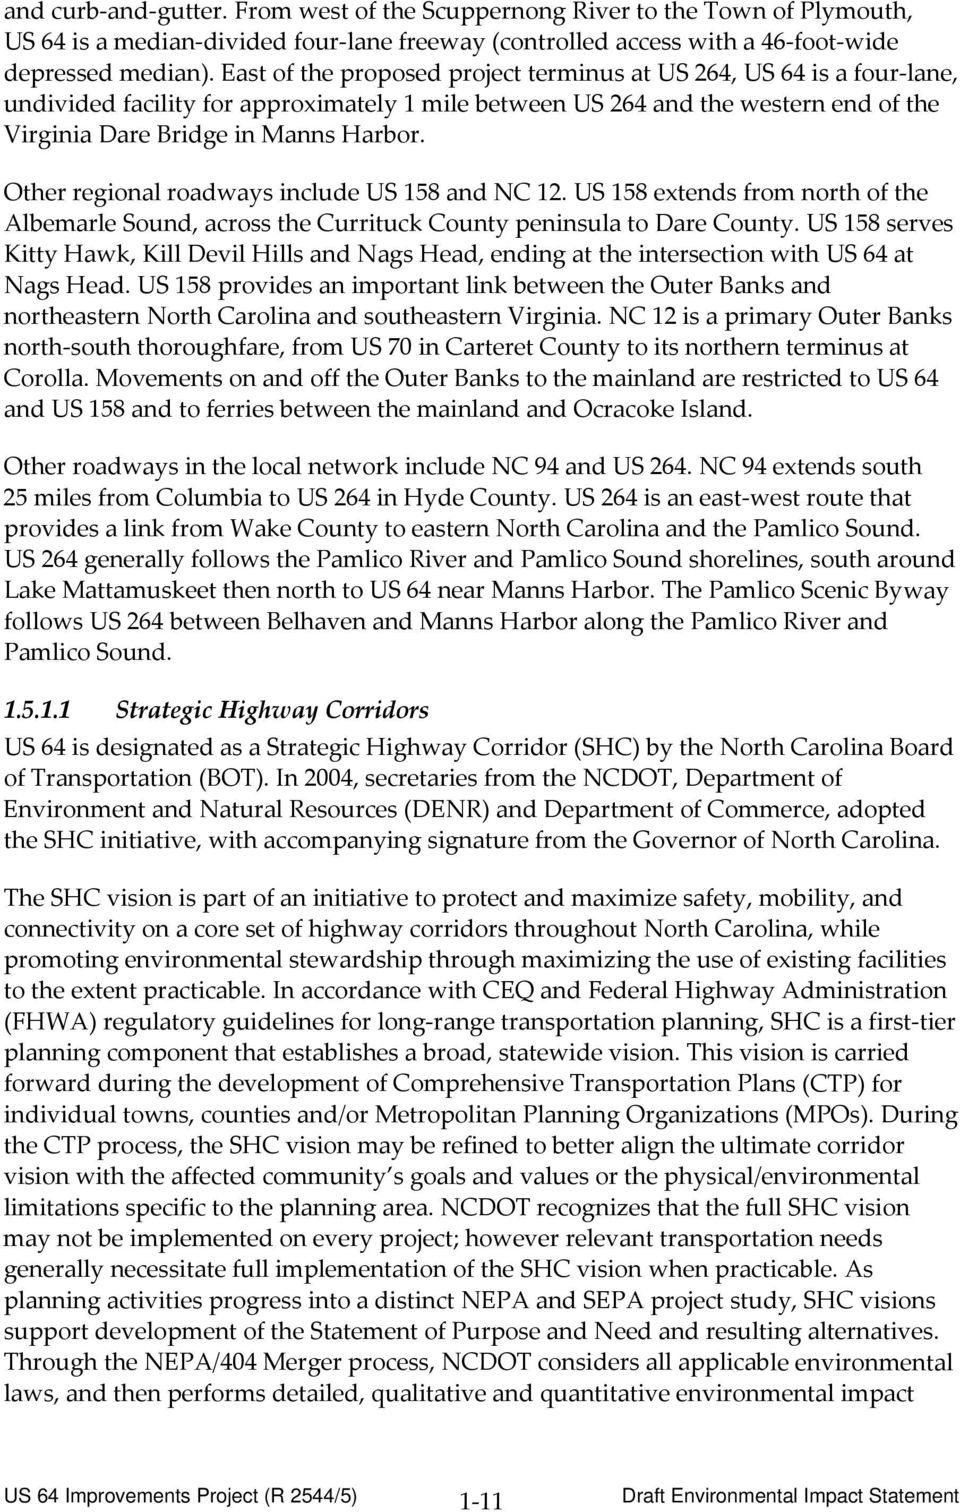 Detailed information about the SHC initiative is available at the following NCDOT web link: http://www.ncdot.